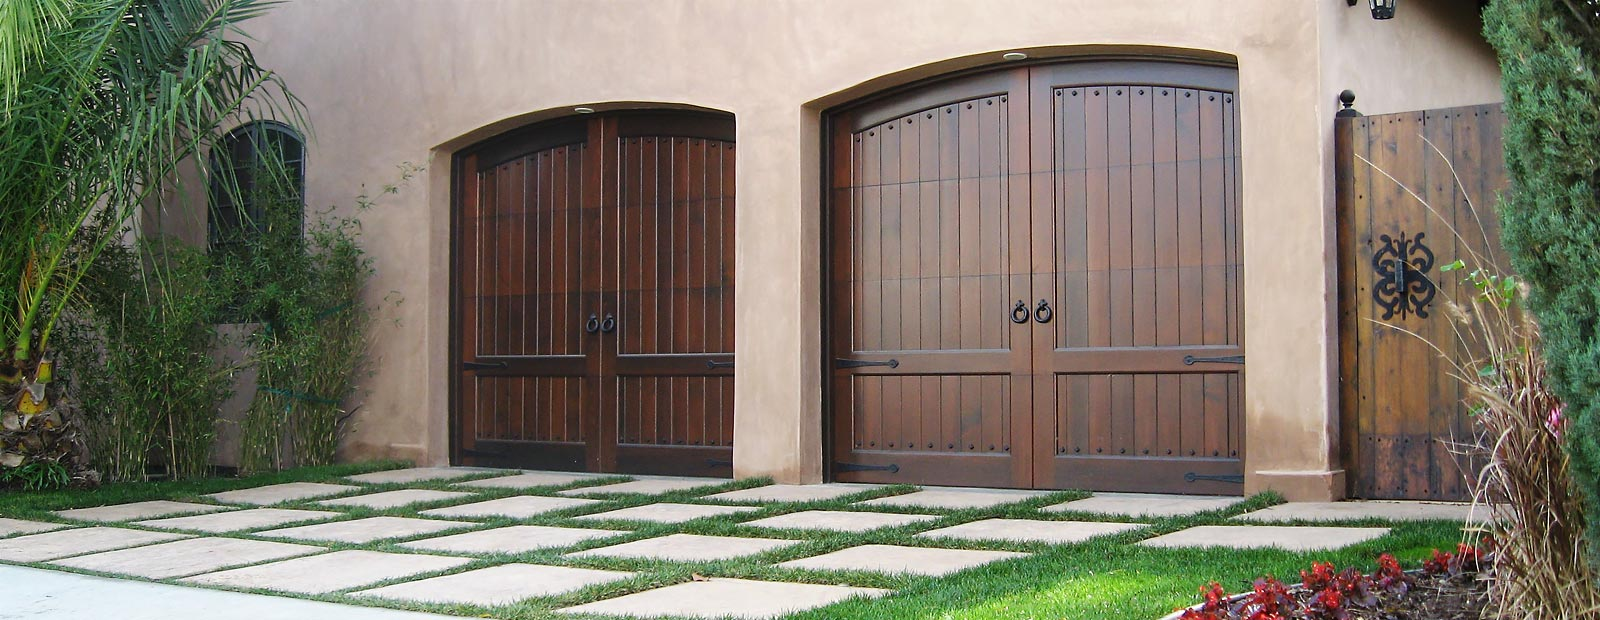 custom stained garage doors california & Custom wood garage doors entrance gates manufacturer - Southern ...